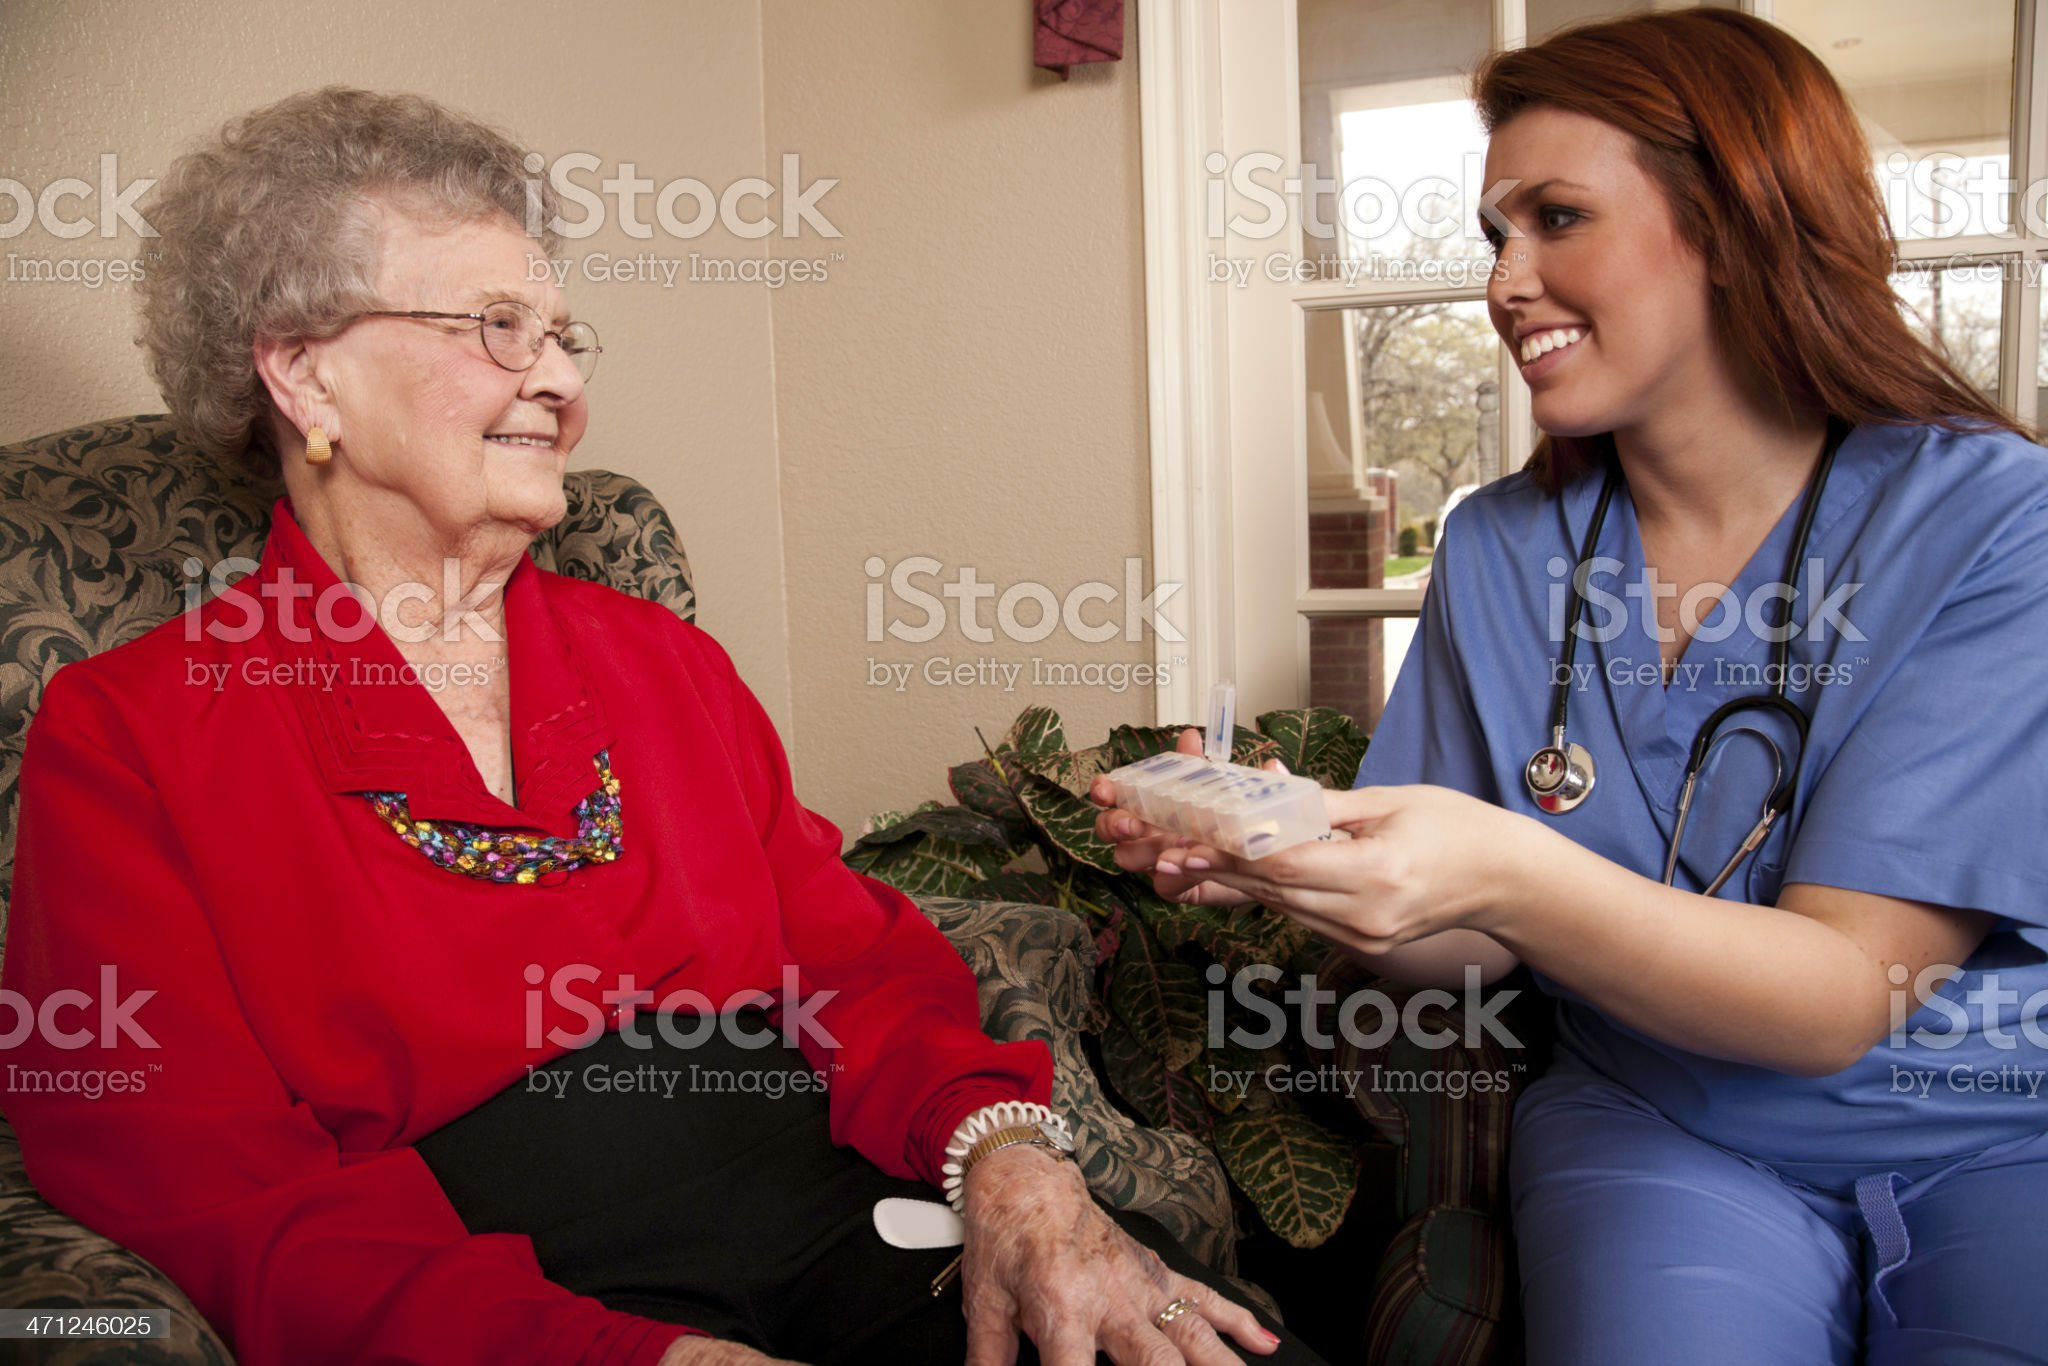 Nurse Explaining Daily Medication to Senior Adult Patient royalty-free stock photo